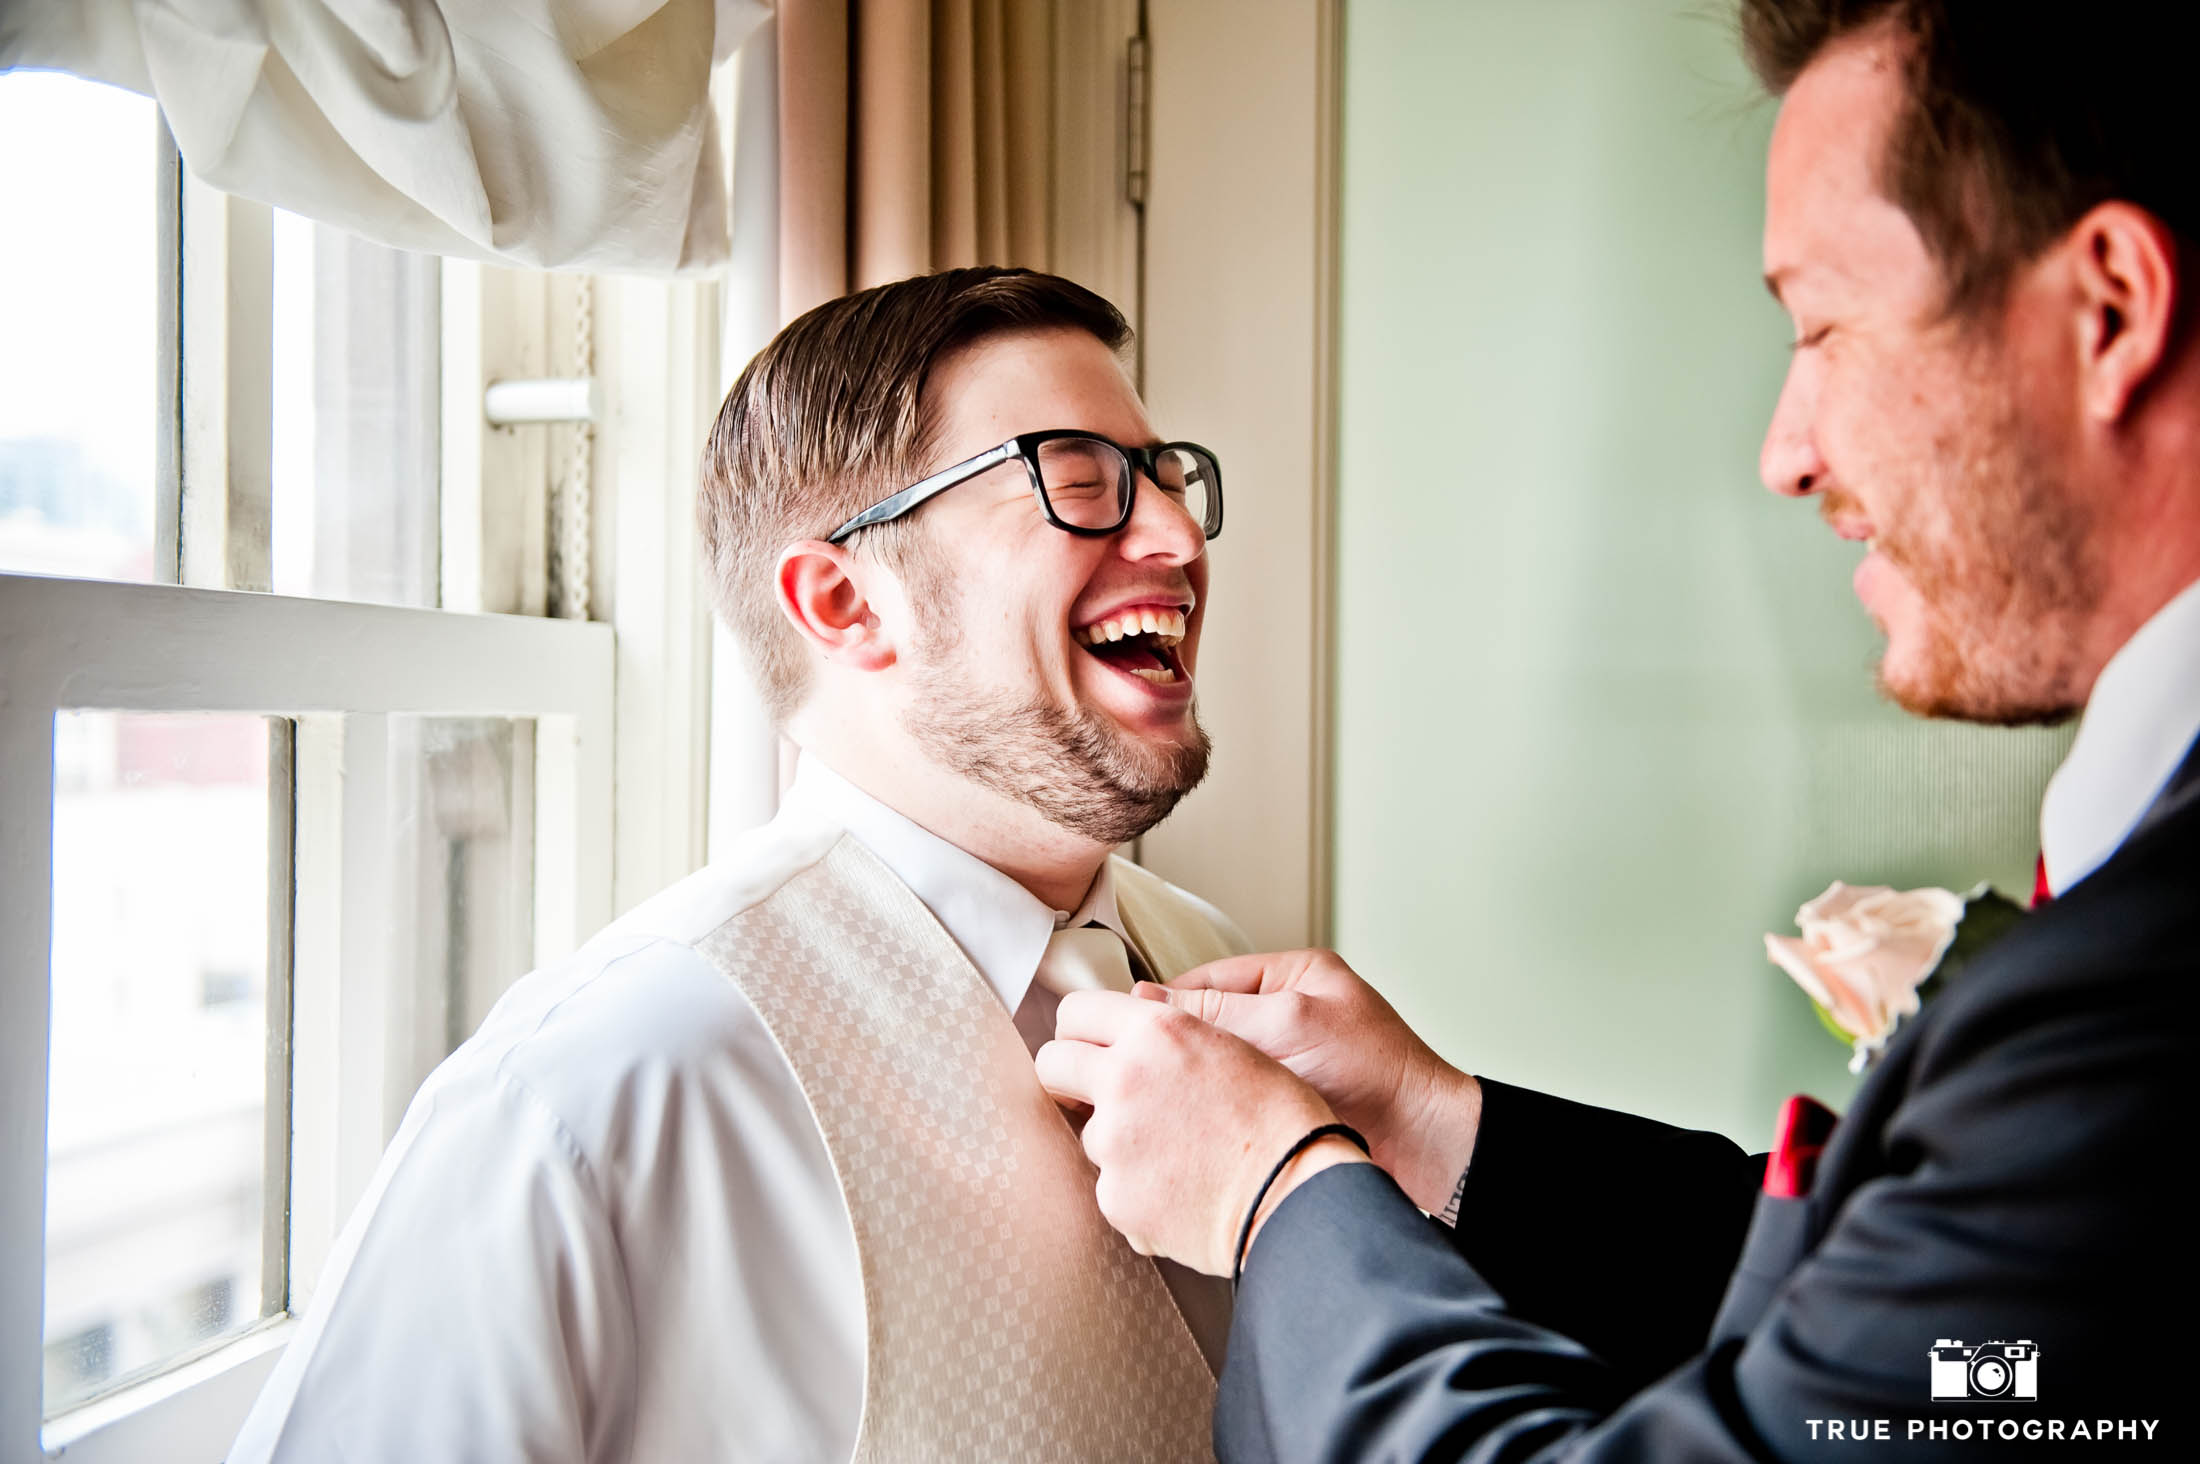 Groom laughing as he puts on tie